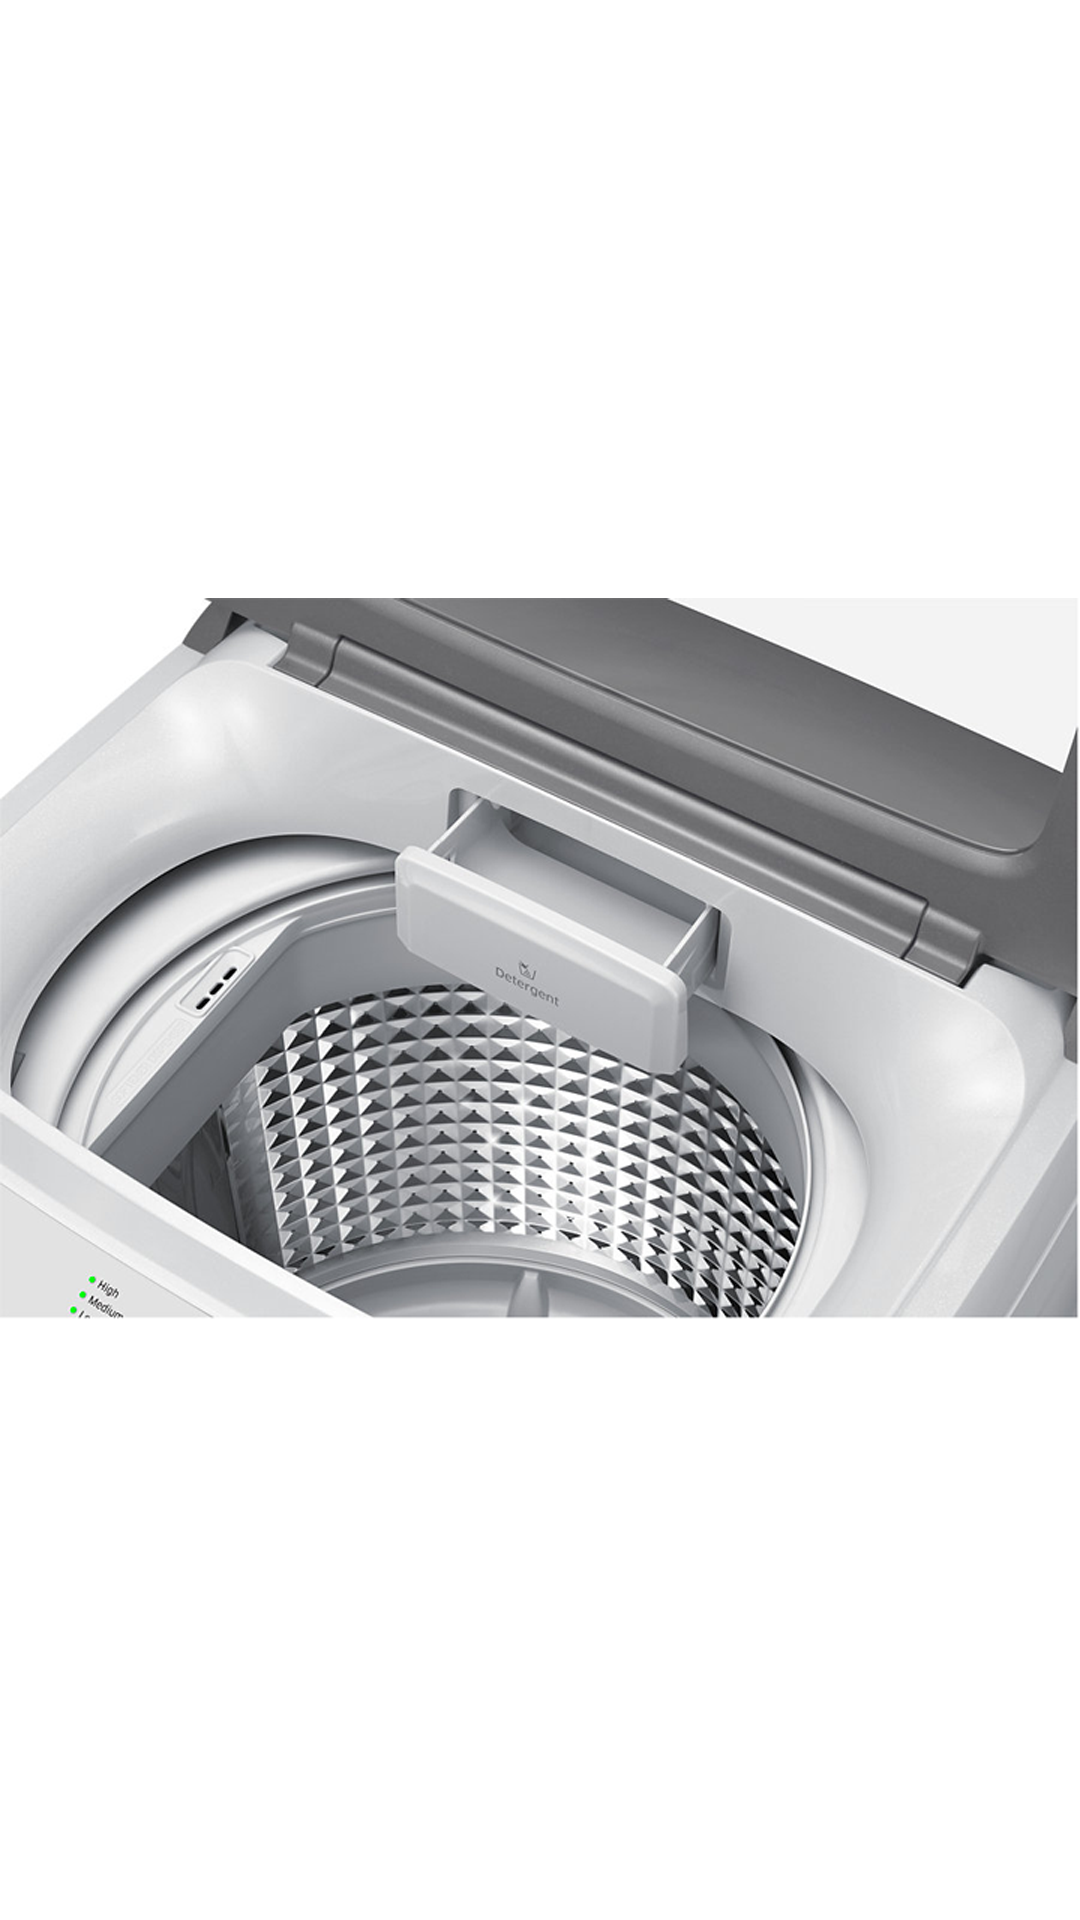 Samsung WA60H4100HY Fully Automatic Top Loading 6 Kg Washing Machine (Light Grey)